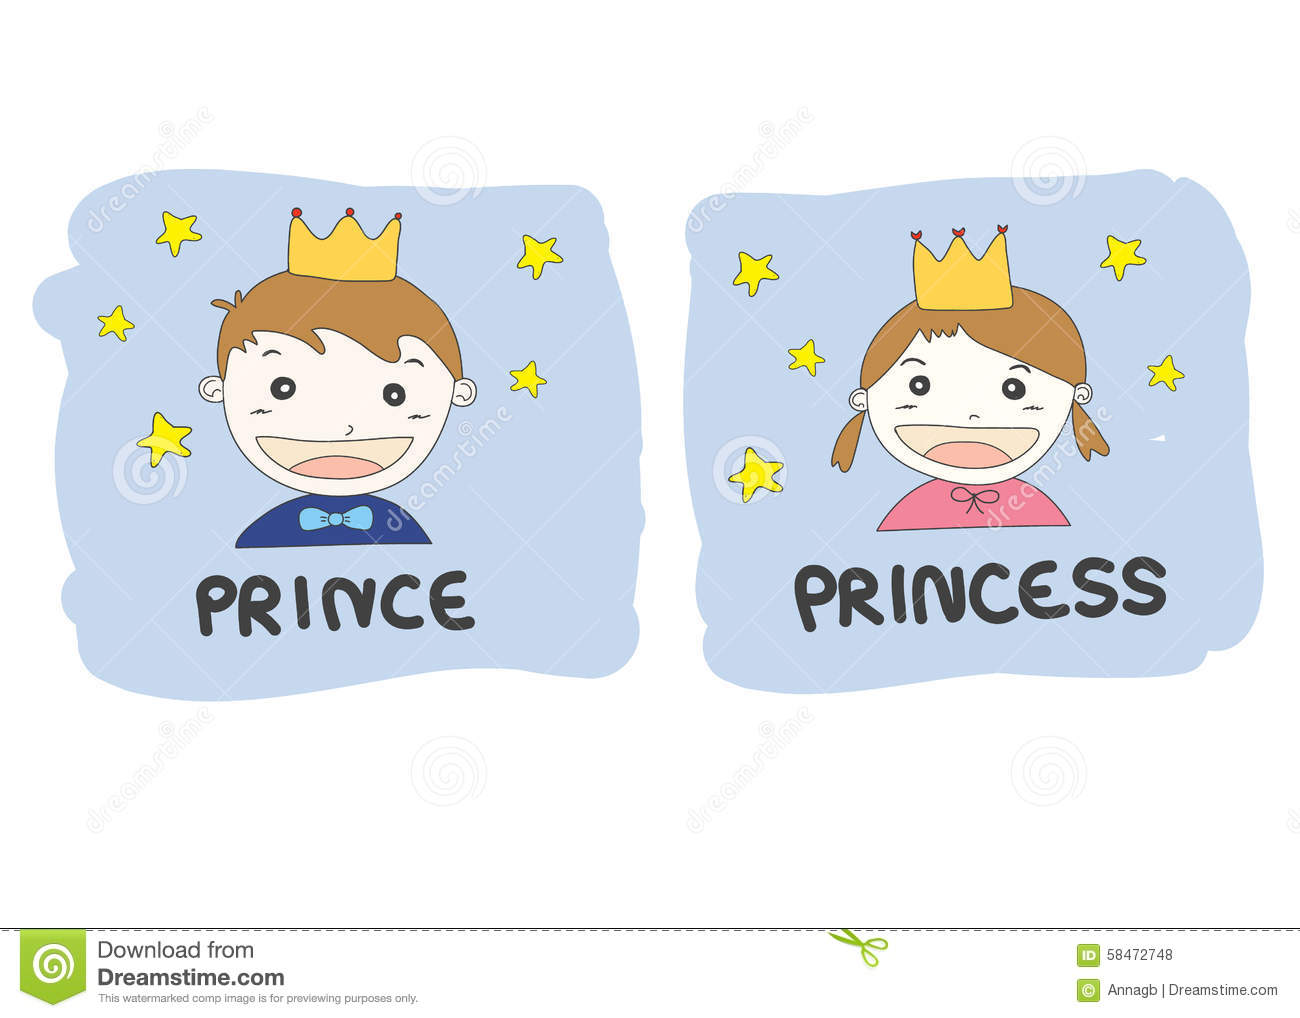 Couple shirt design download - Cartoon Prince And Princess With Gold Crown Yellow Stars And